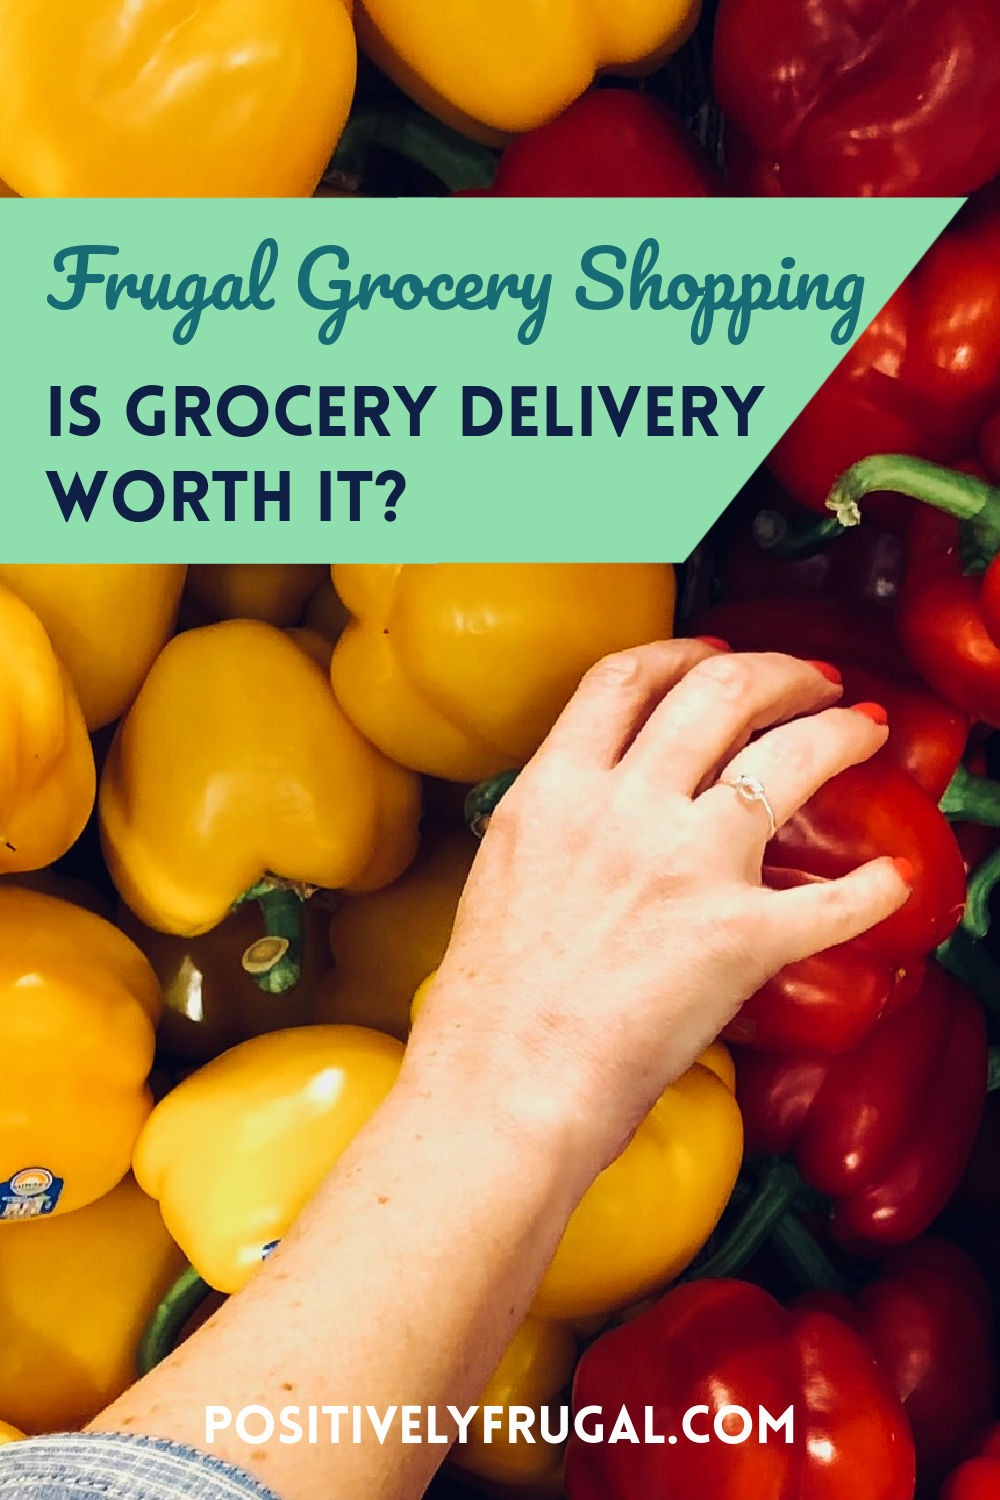 Is Grocery Delivery Worth It by PositivelyFrugal.com